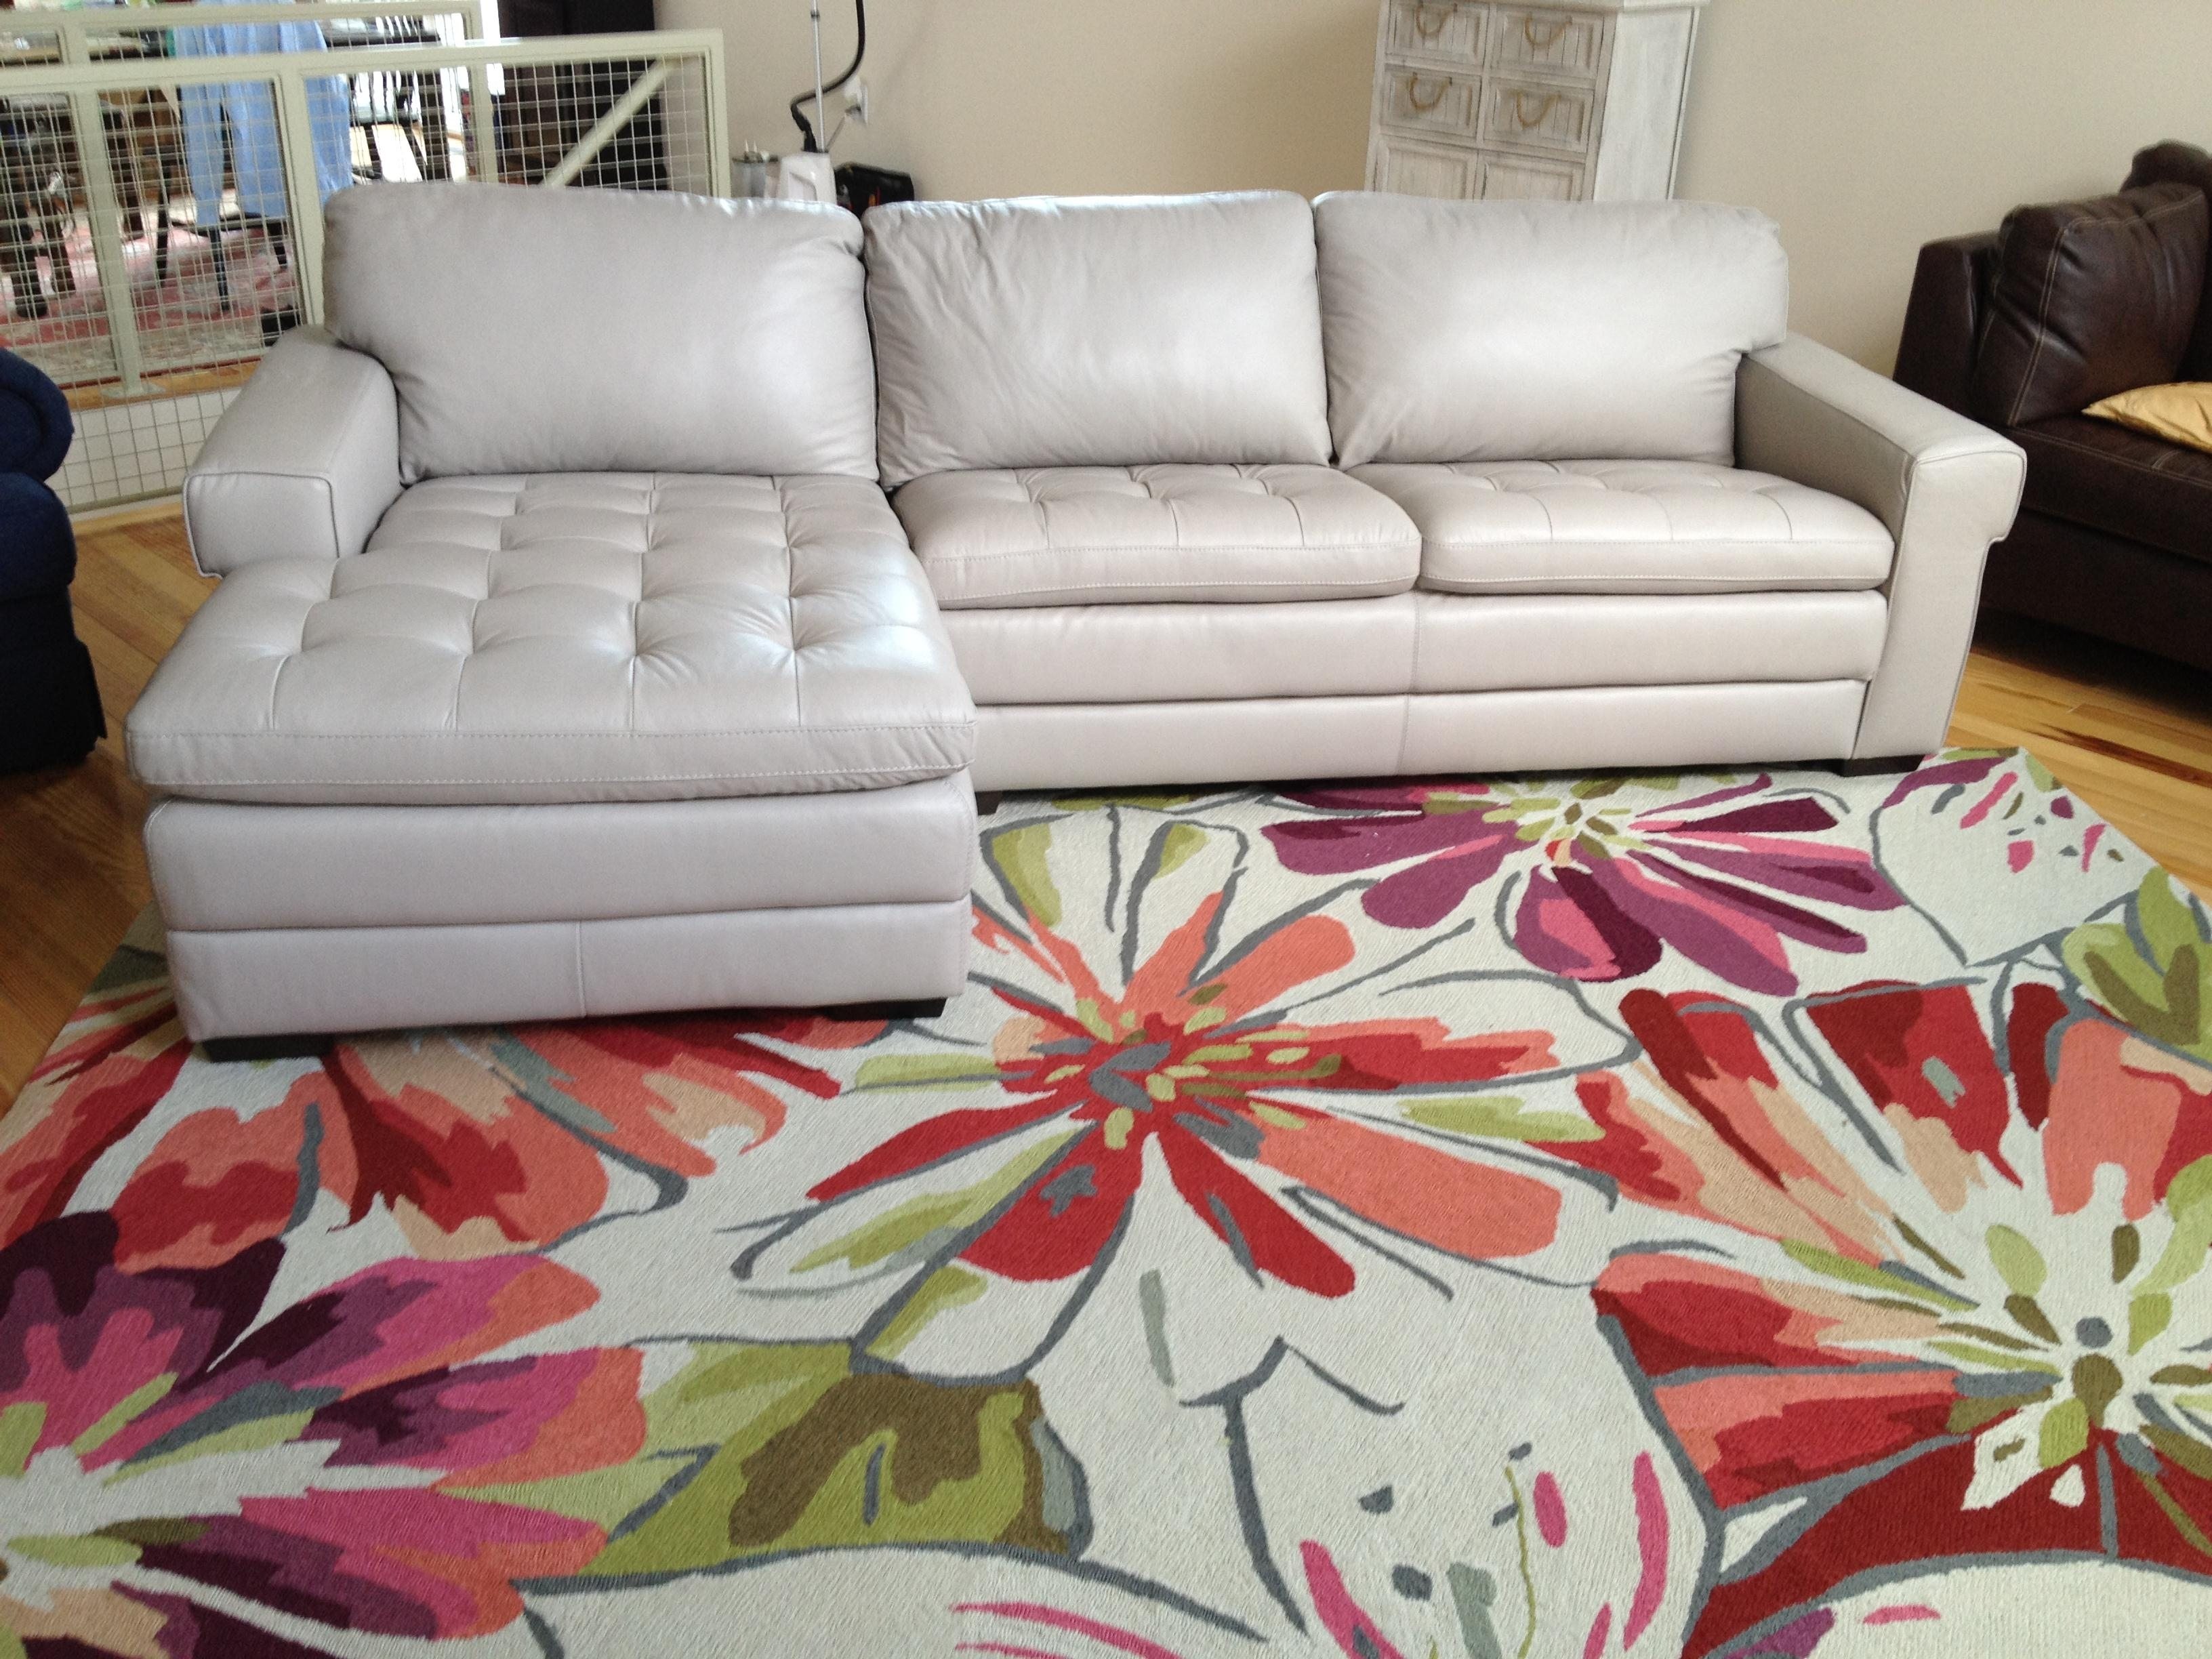 Havertys Furniture #galaxy Sofa Looks Awesome In My Living Room intended for Sectional Sofas at Havertys (Image 9 of 15)